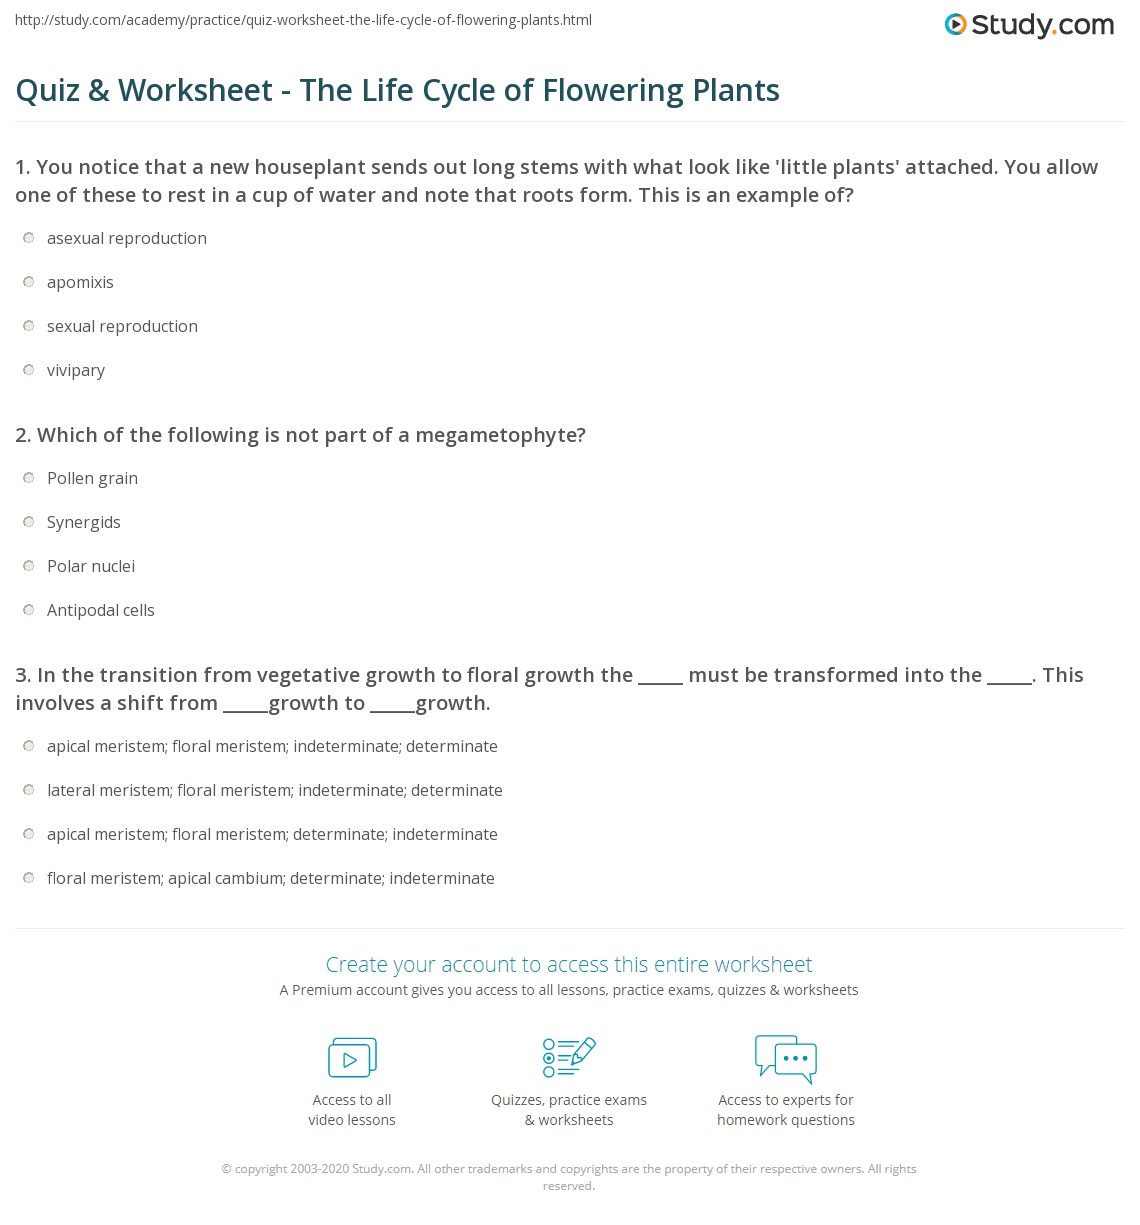 Flowering Plants Life Cycle Worksheet